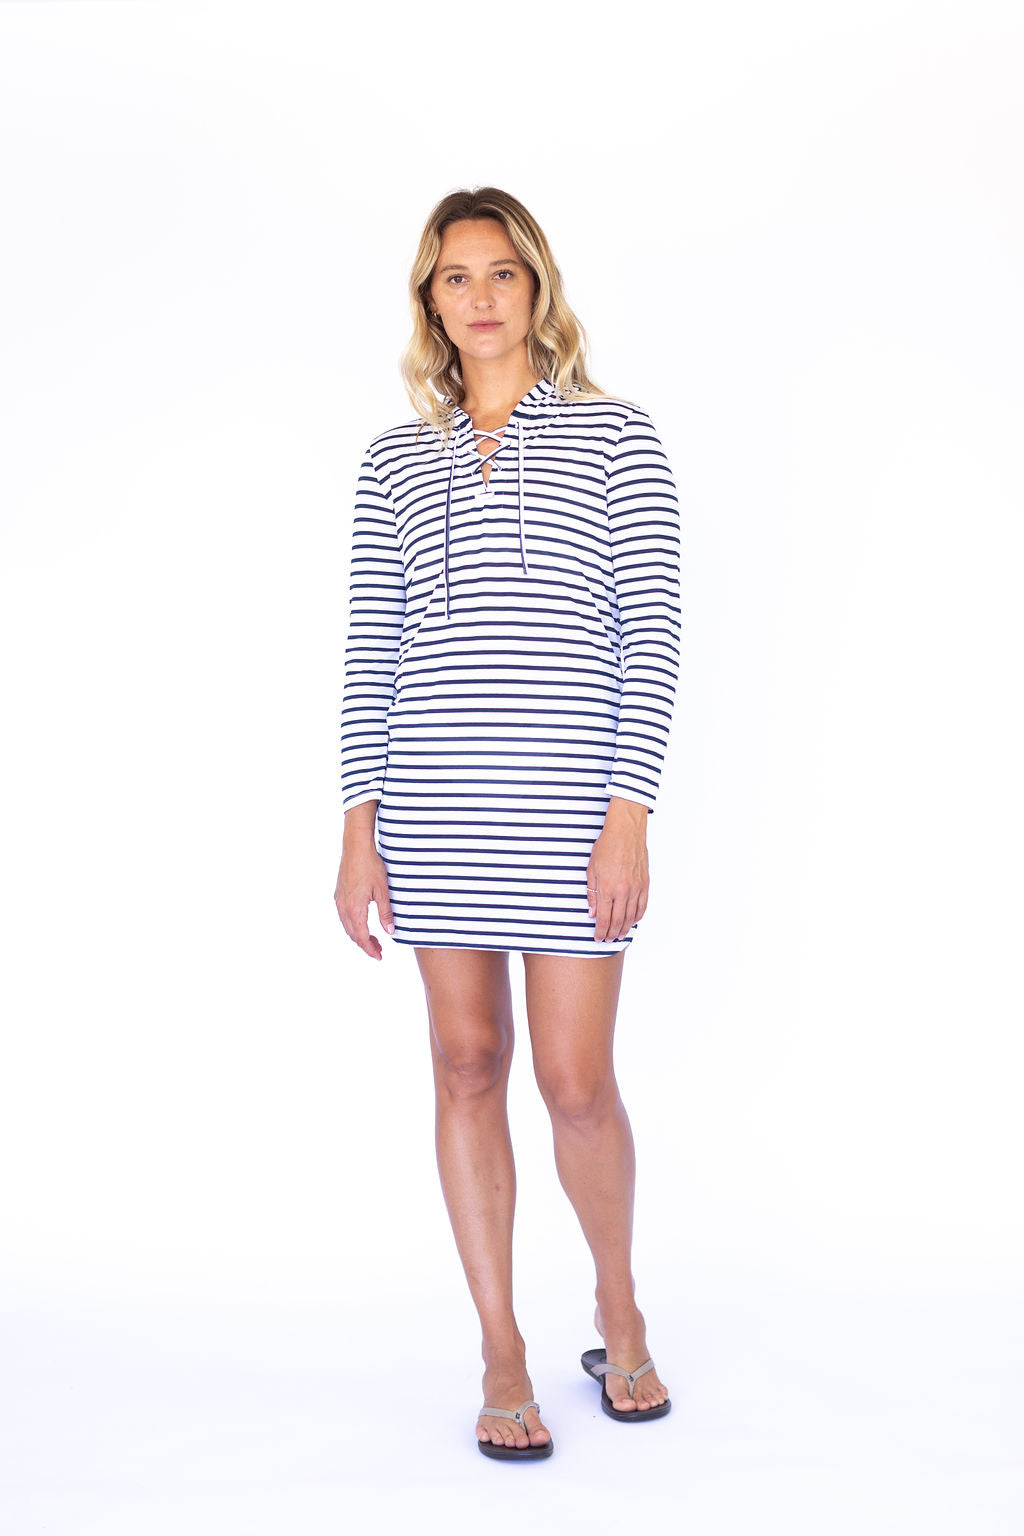 Maricel UPF 50 Dress - Night Sky Stripe